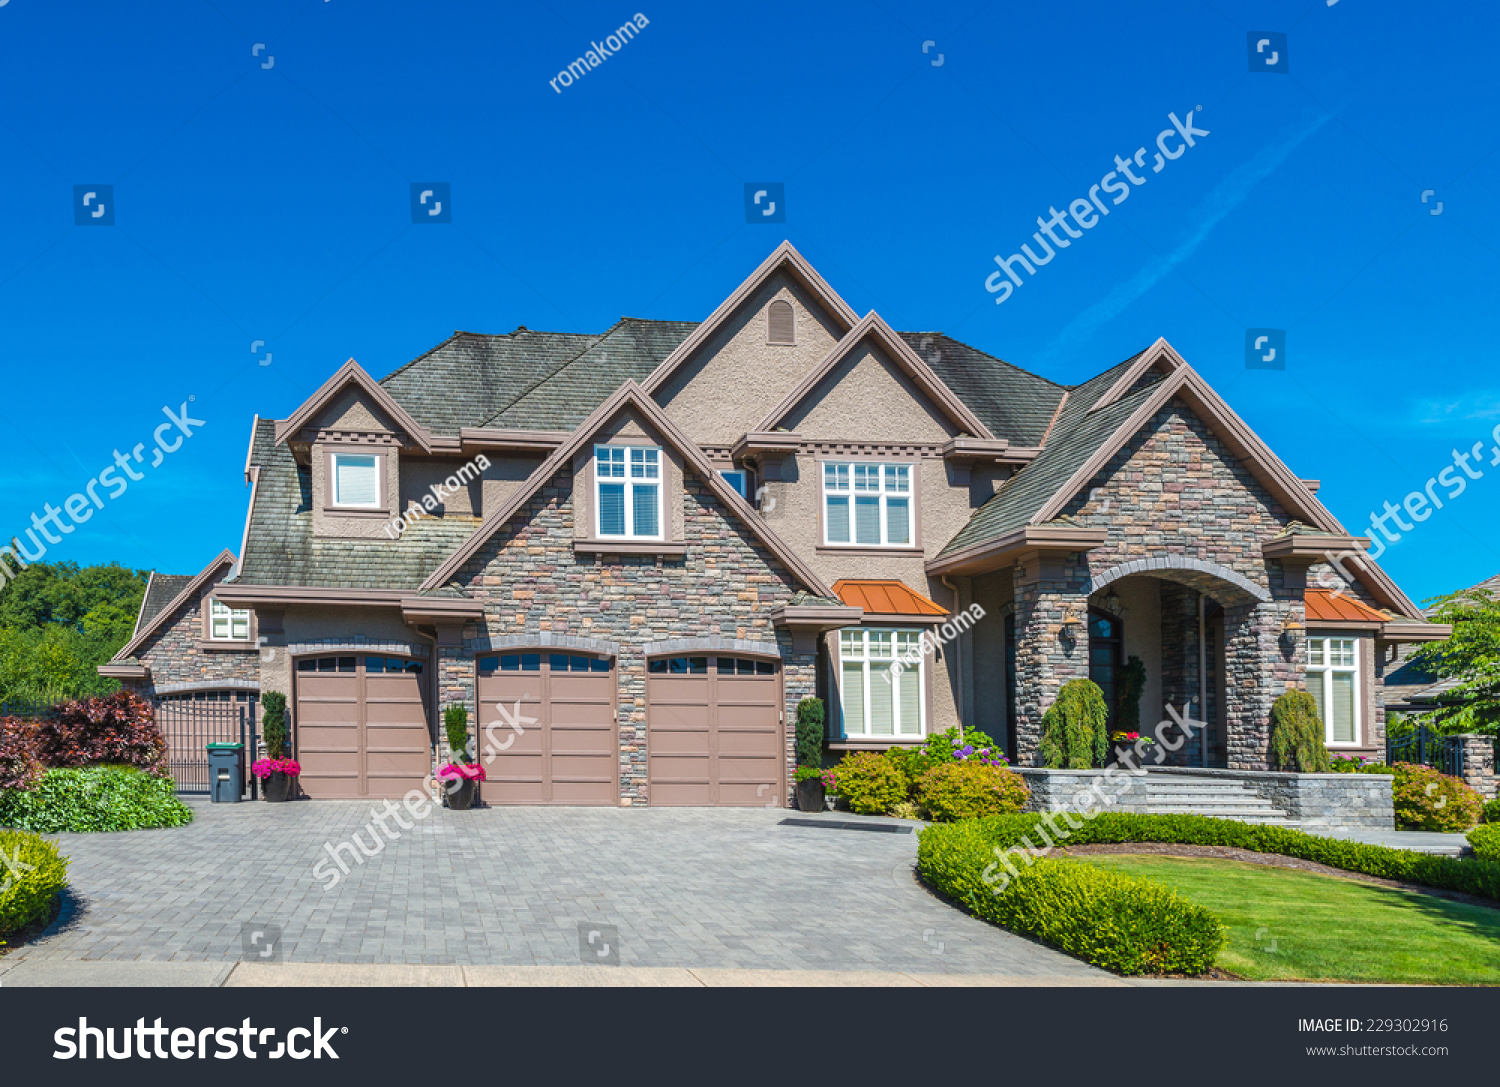 Custom Built Luxury House With Nicely Trimmed Front Yard